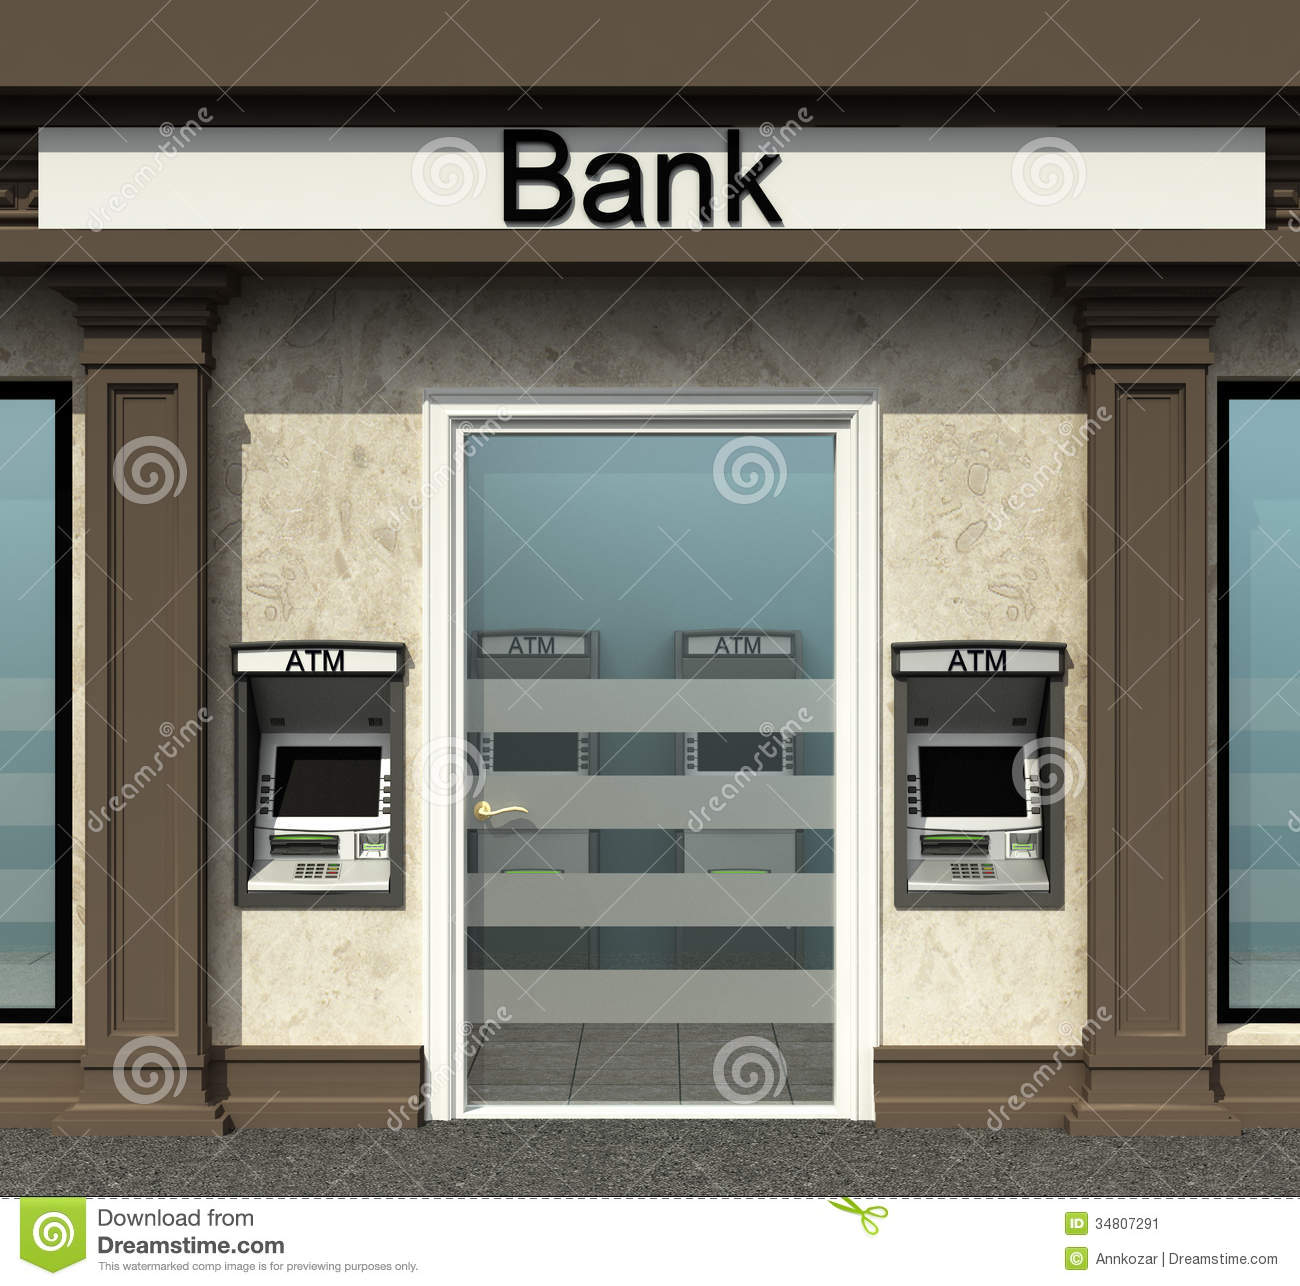 Bank branch clipart png free Bank Branch With Automated Teller Machine Royalty Free Stock ... png free